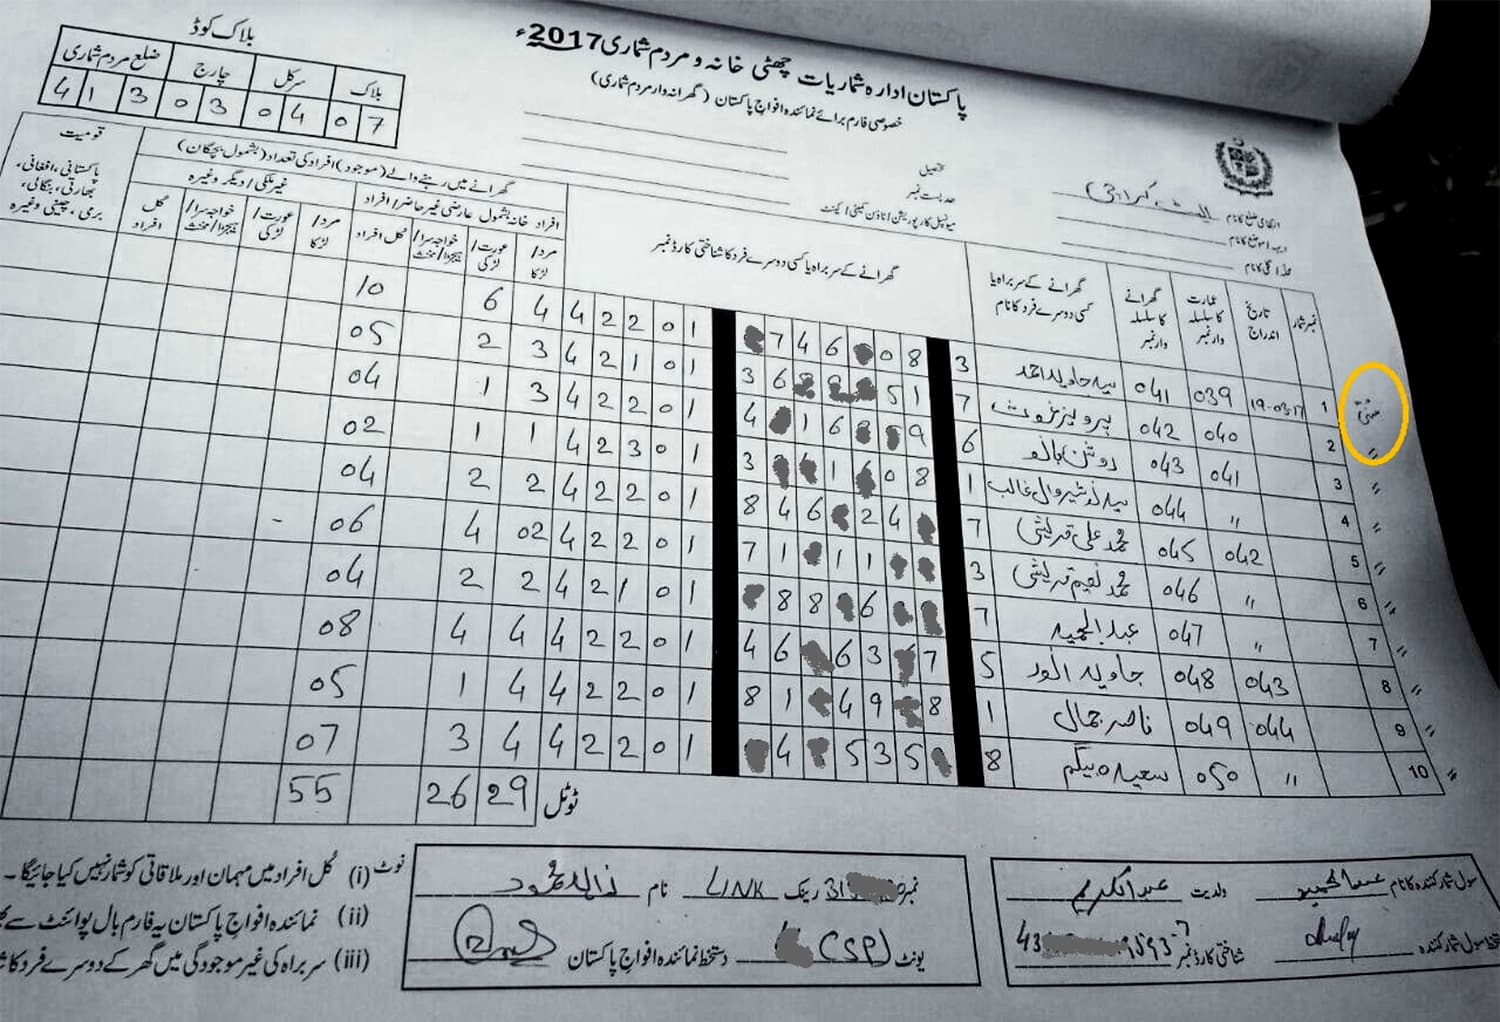 Form used by armed forces personnel for data collection. The word 'Sunni' can be seen handwritten on the right (circled) in this specimen.